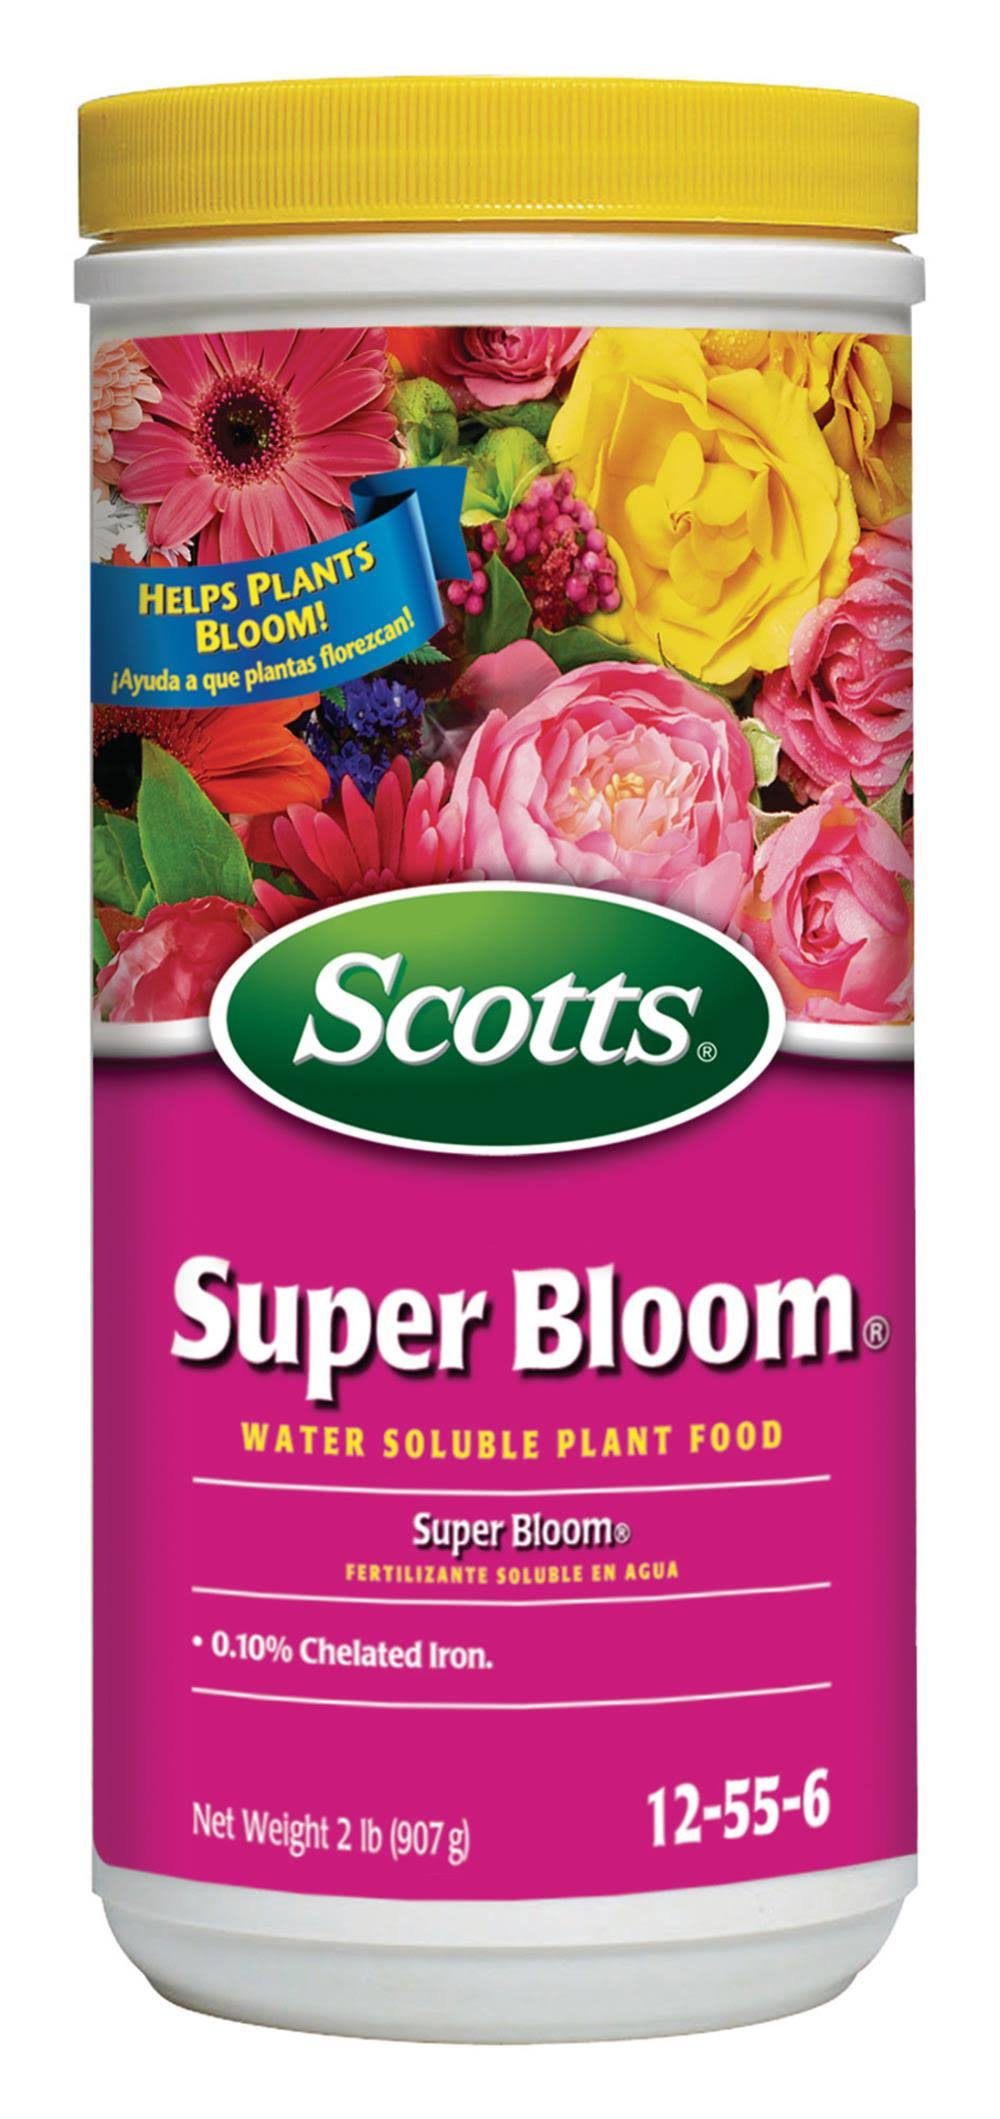 Scotts Water Soluble Super Bloom Plant Food - 2lbs